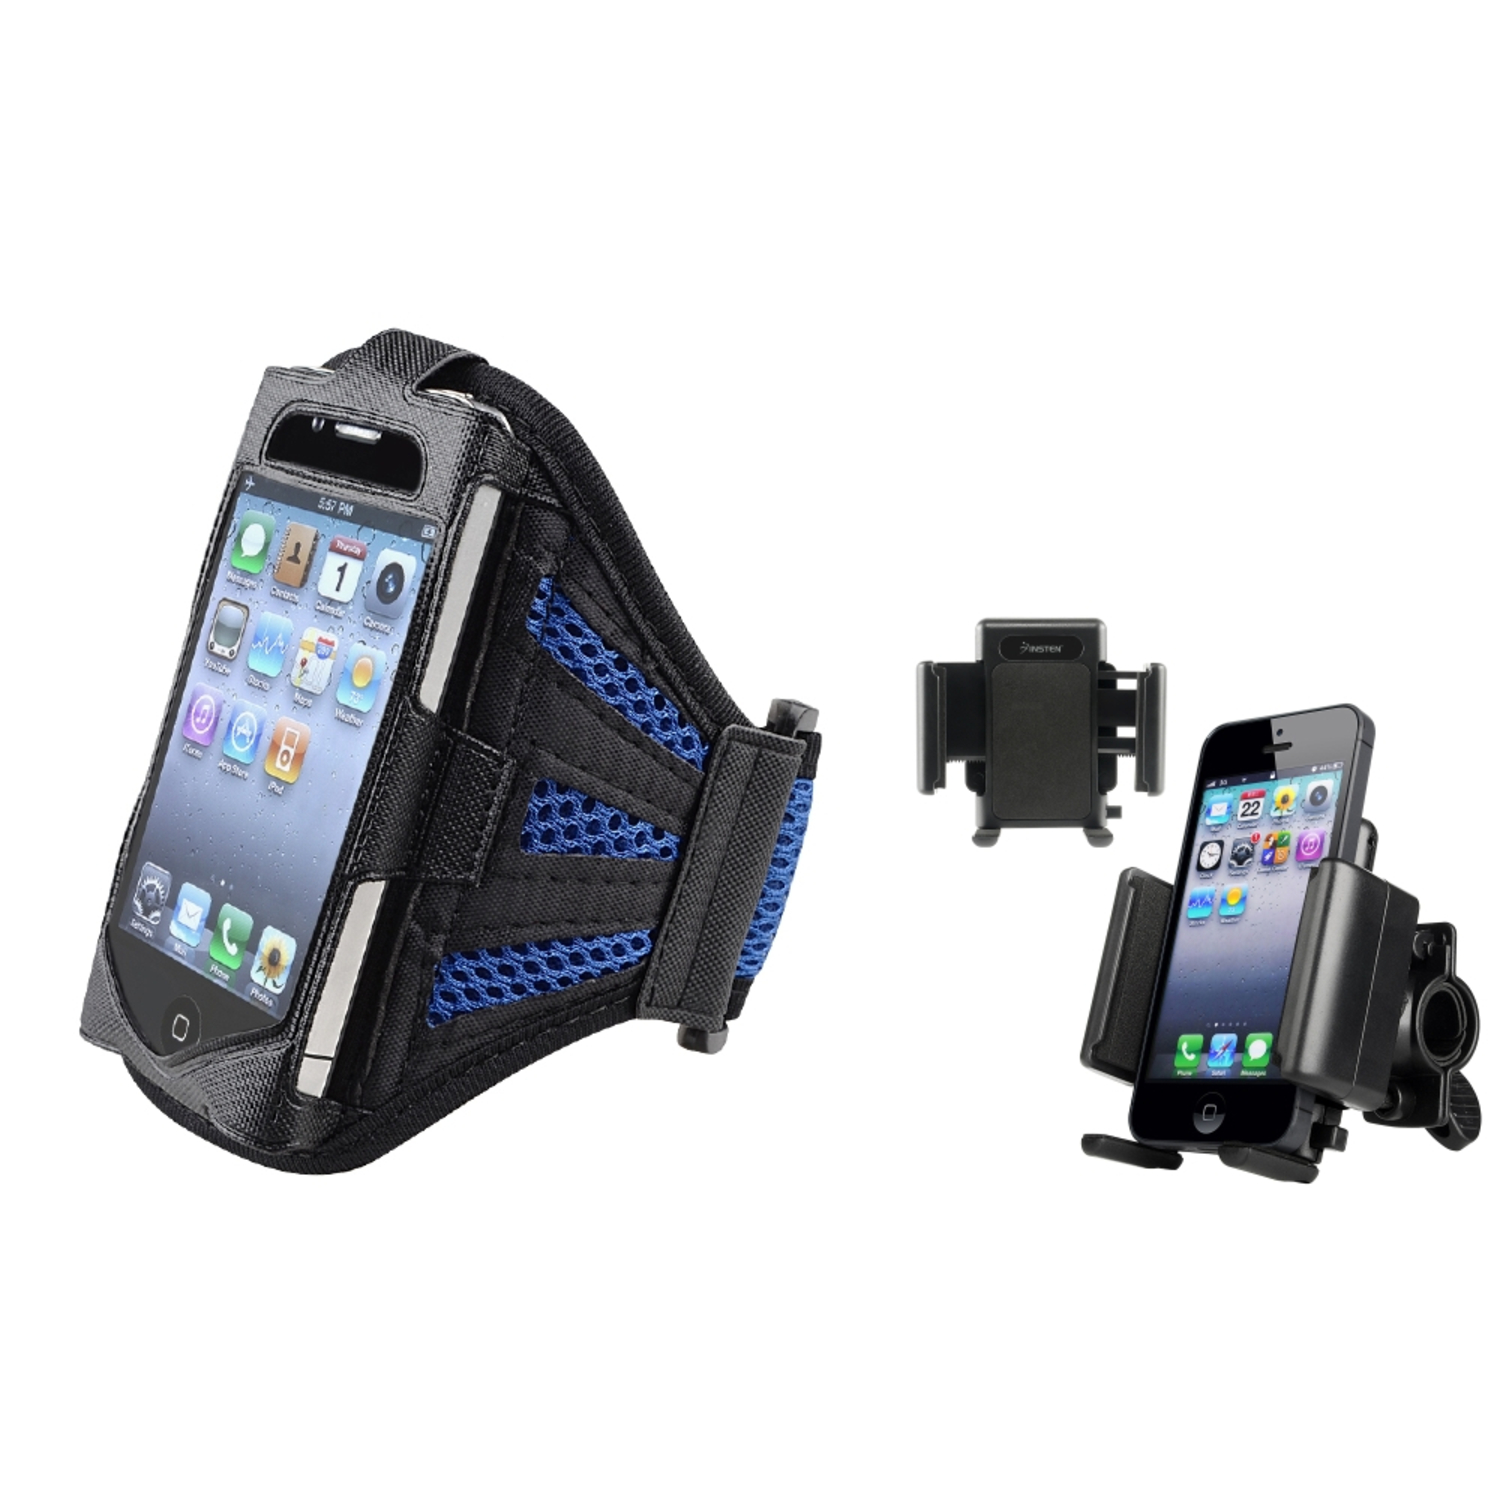 Insten Sport Combo Bicycle Holder+BLACK BLUE RUNNING GYM ARMBAND CASE FOR iPhone 4 4S